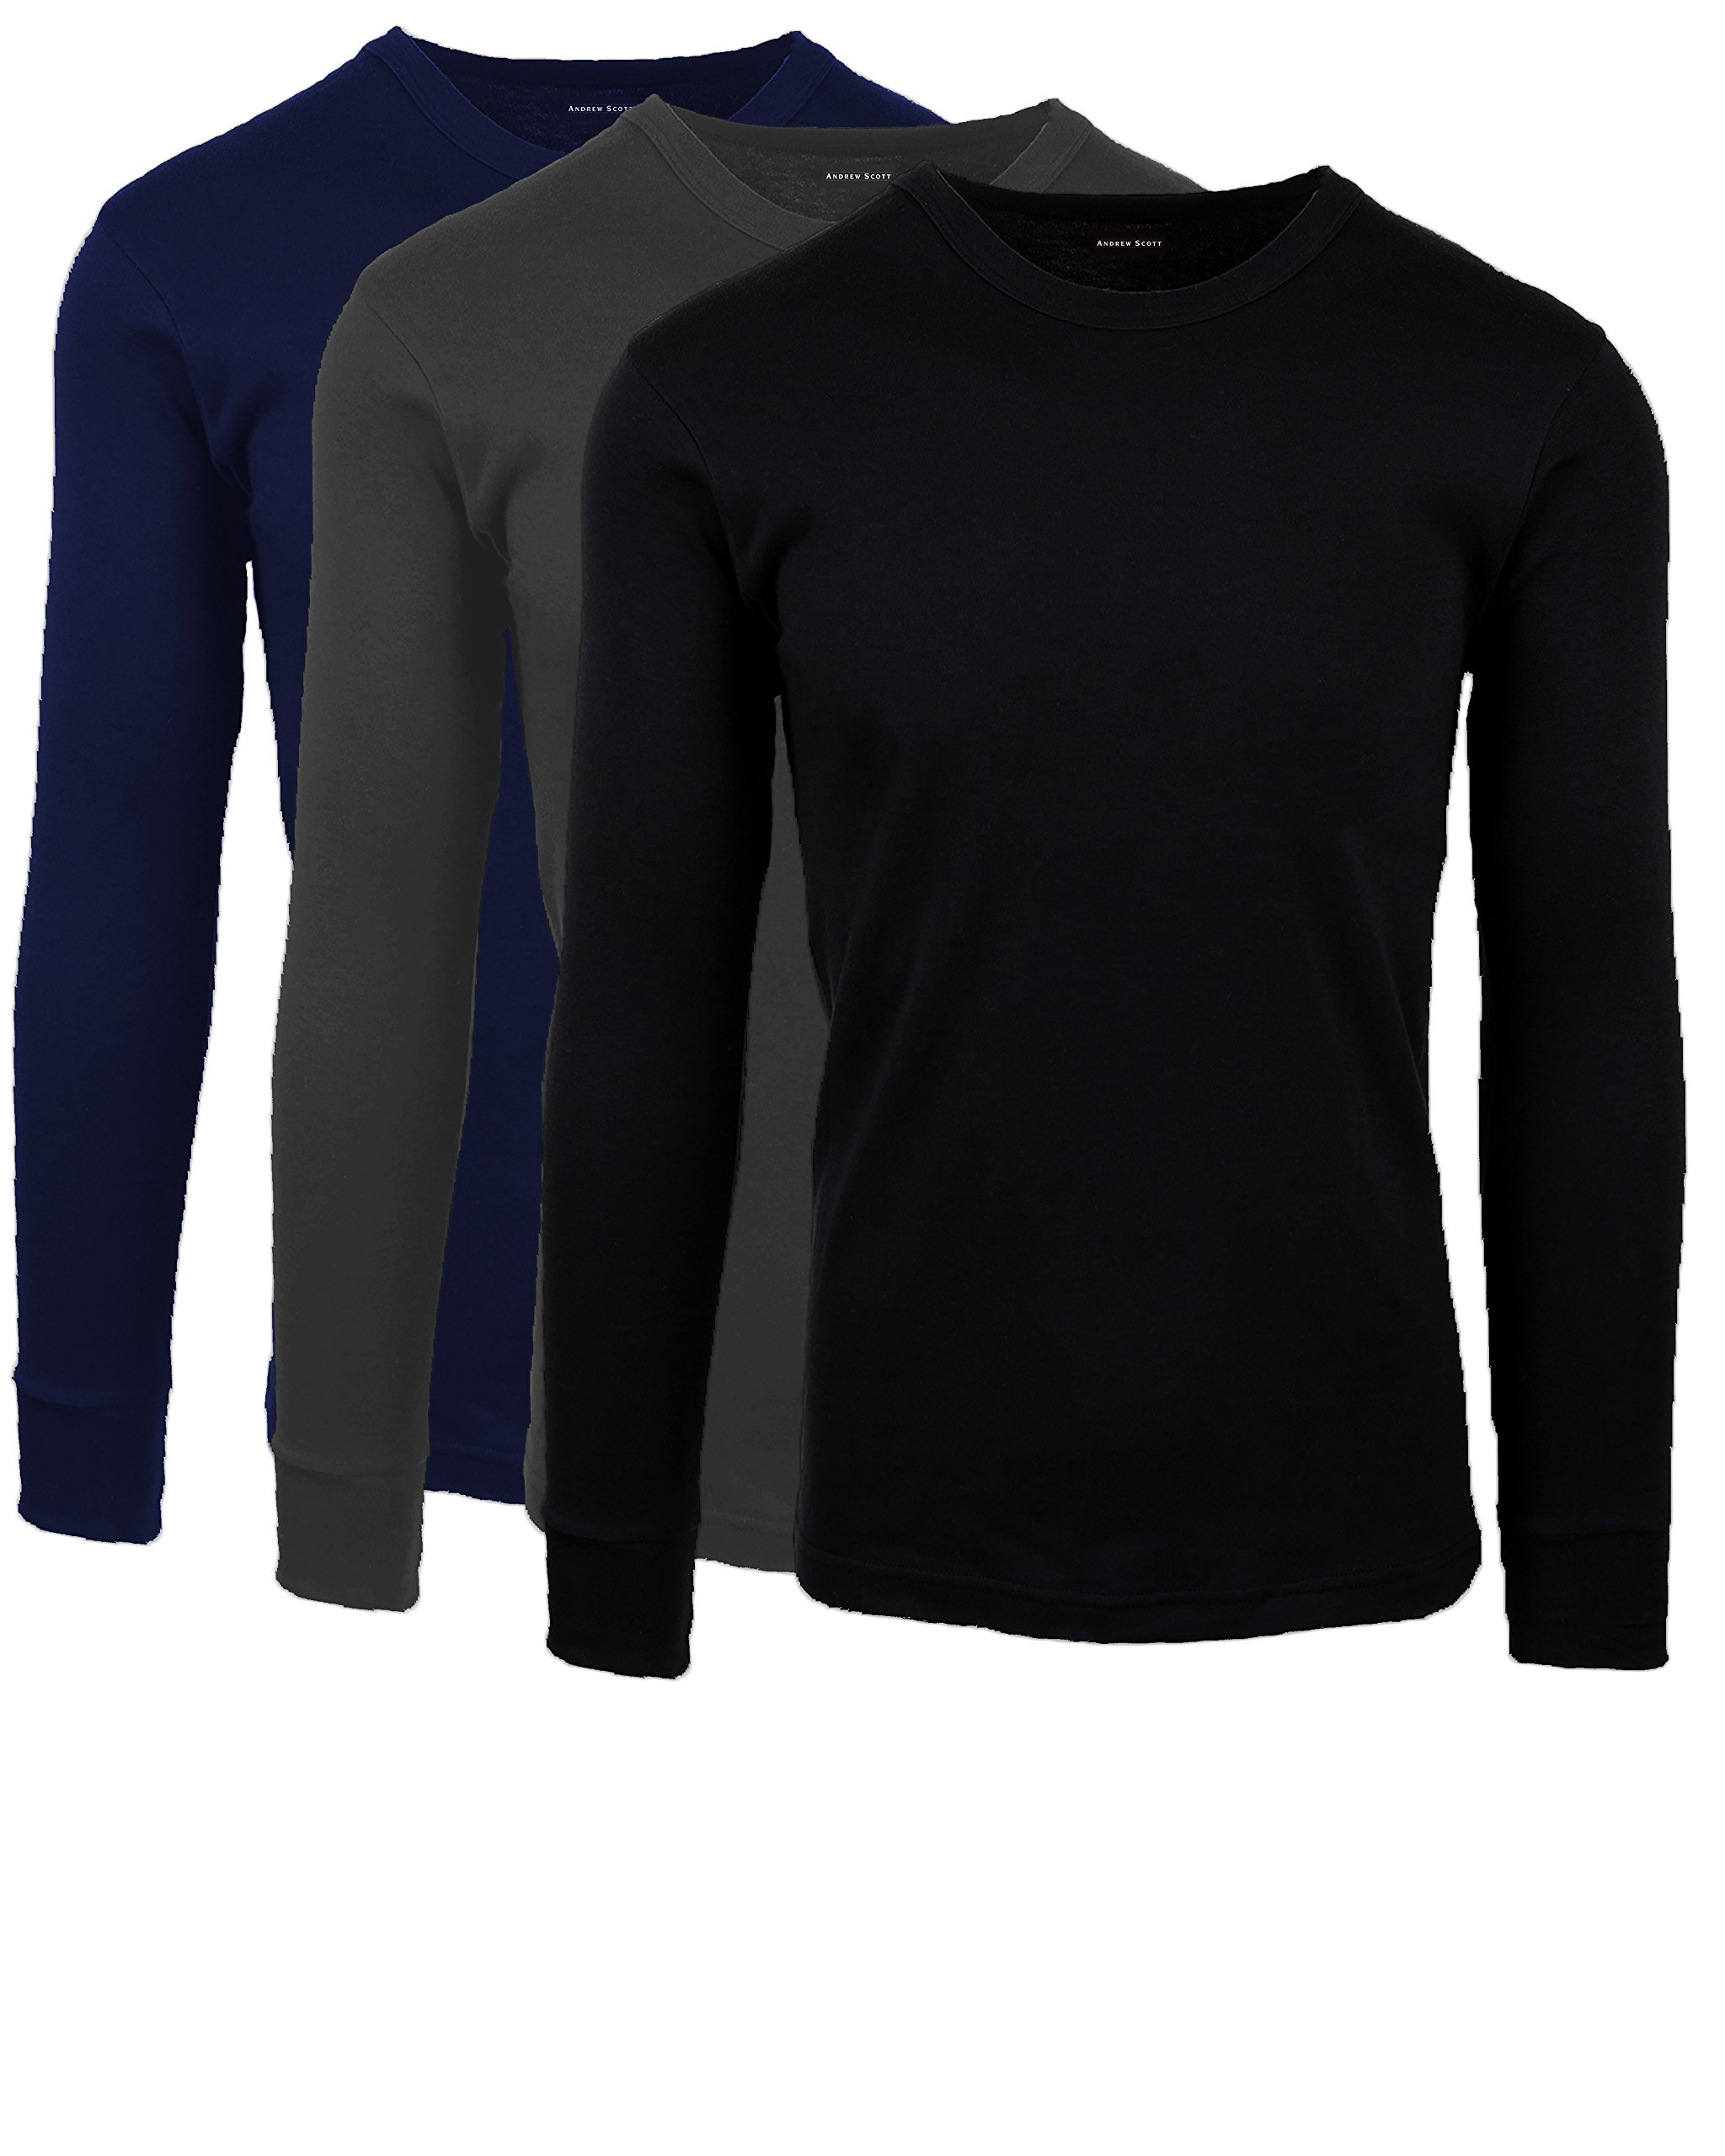 Andrew Scott Men's 3 Pack Premium Cotton Thermal Top Base Layer Long Sleeve Crew Neck Shirt (X-Large, 3 Pack- Black/Heather Grey/Midnight Navy) by Andrew Scott